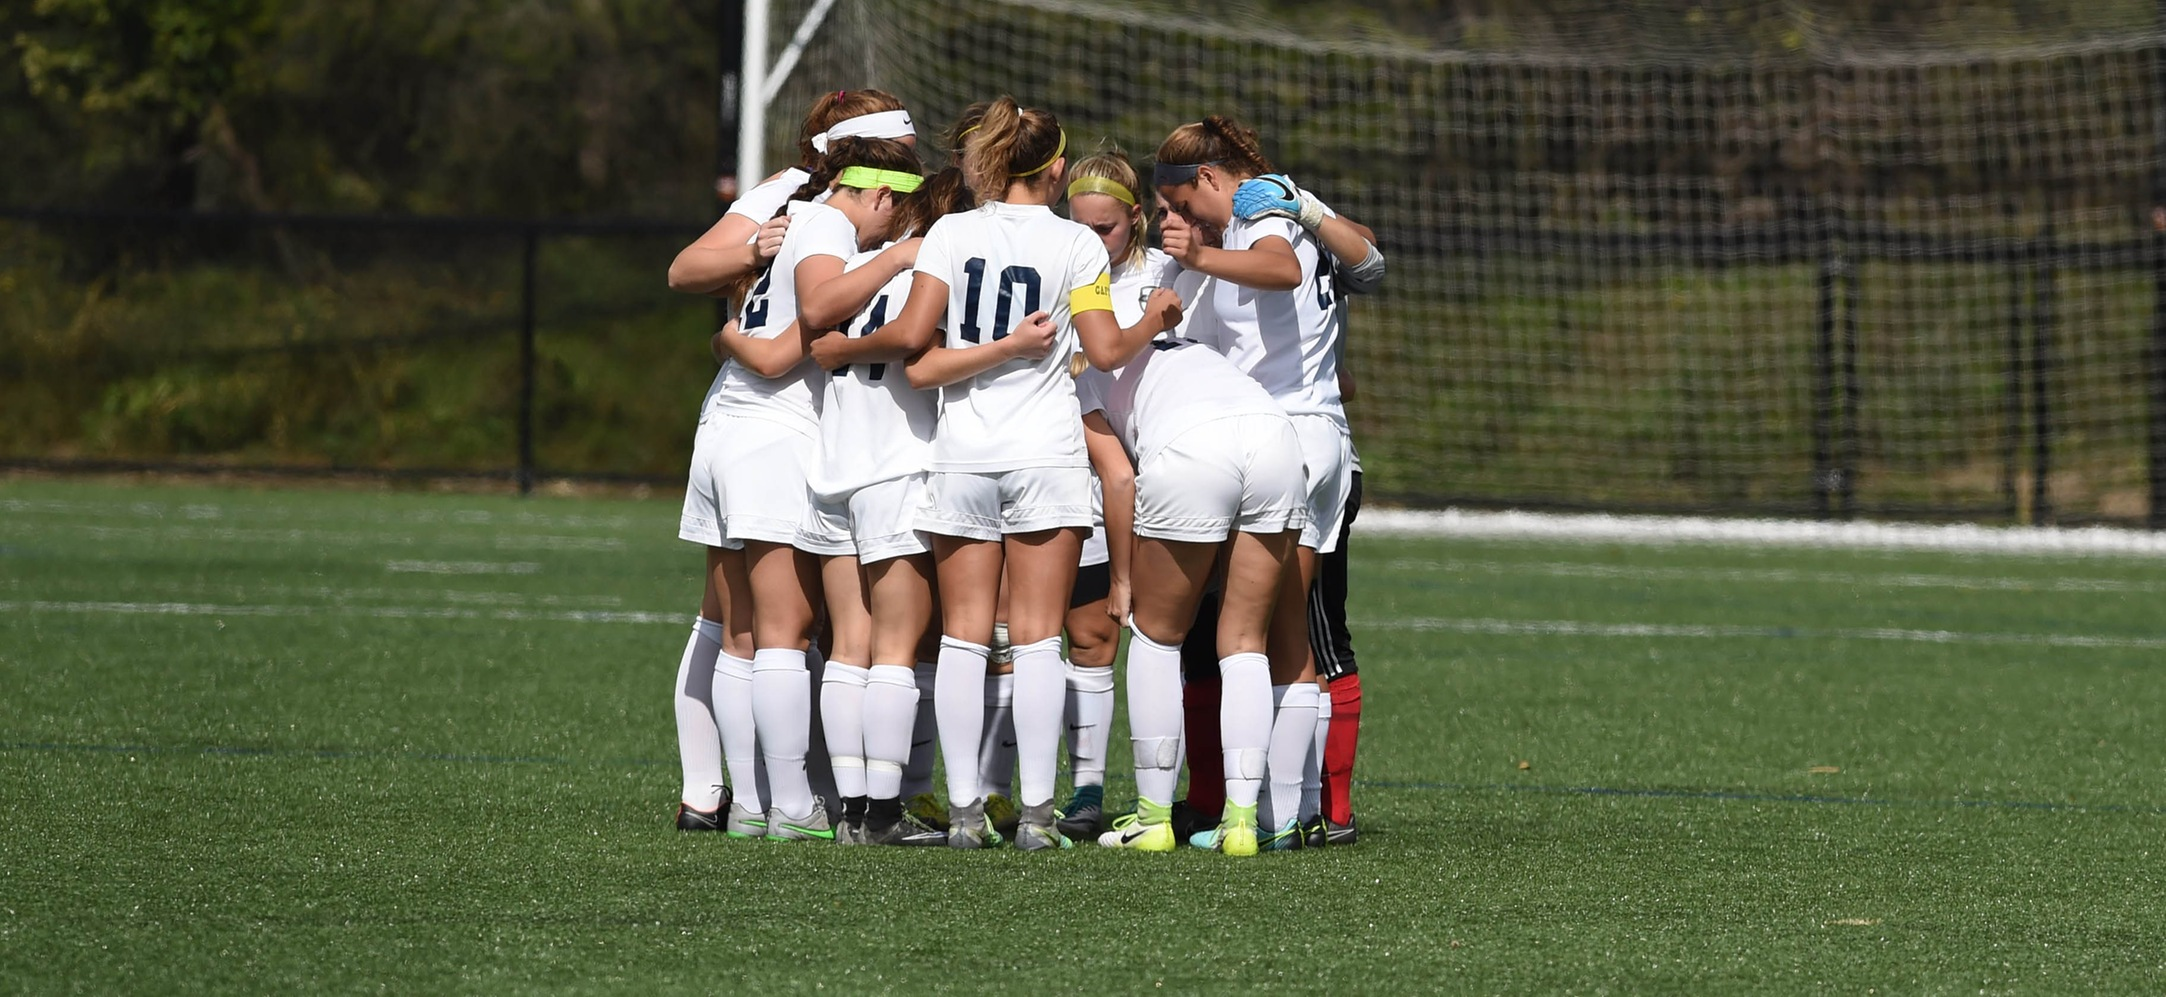 Women's Soccer Drops 2-0 Decision at Susquehanna